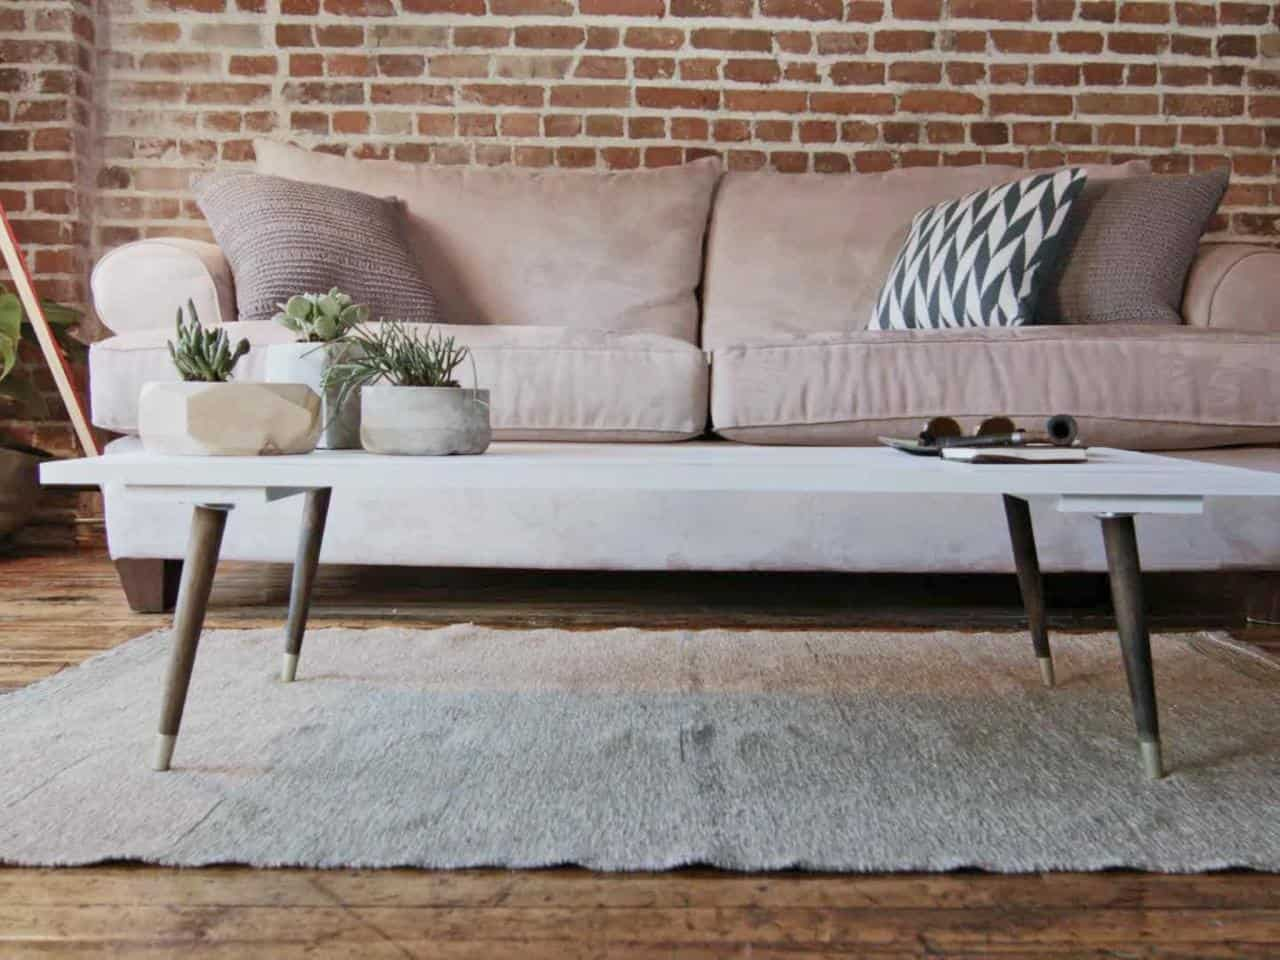 Midcentury style modern coffee table